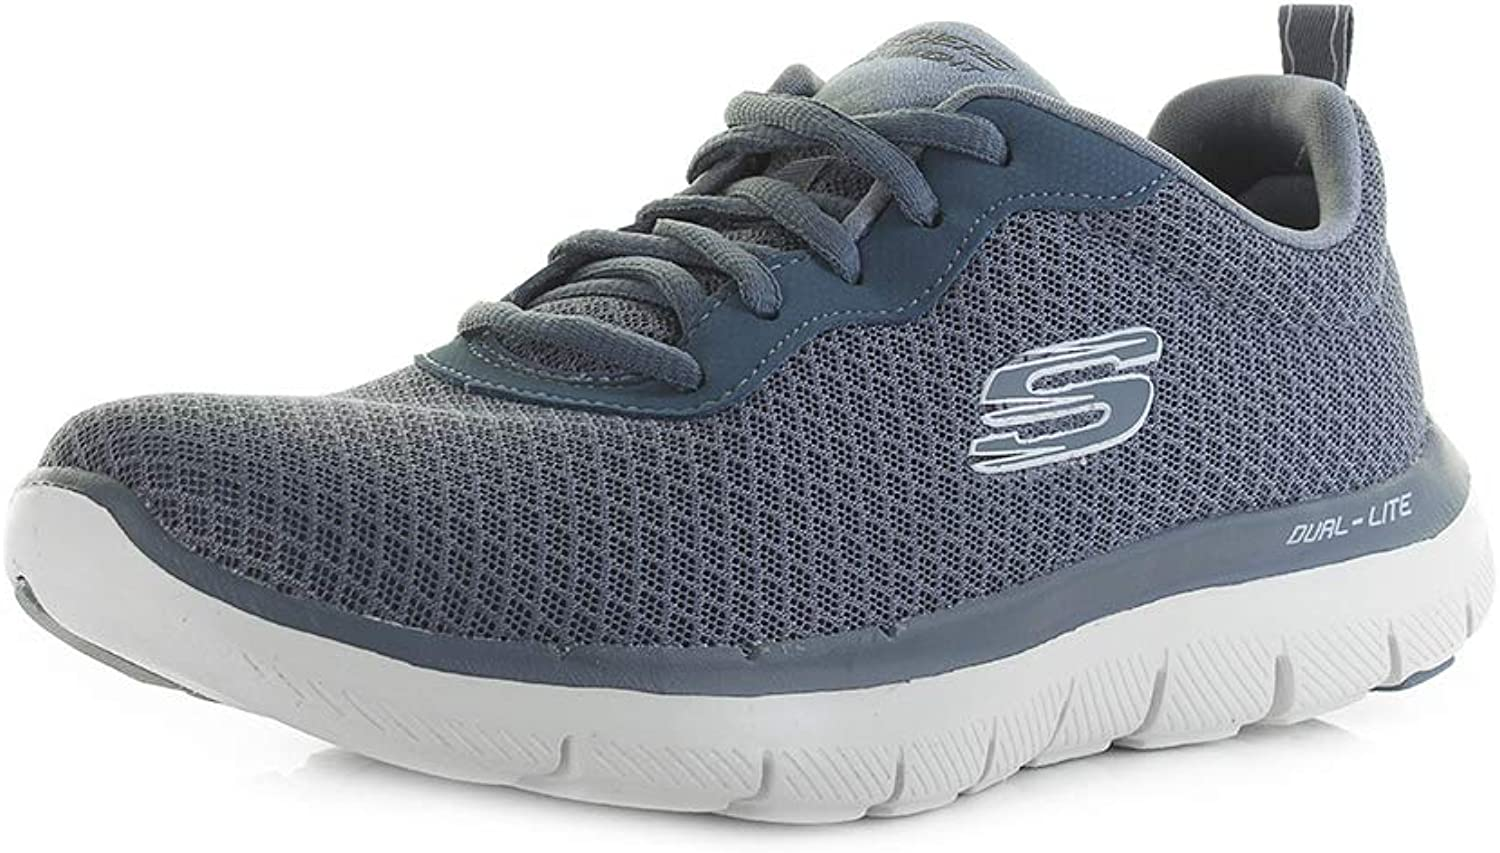 shoestore Womens Skechers Flex Appeal 2.0 Slate Grey Dual Lite Trainers Size